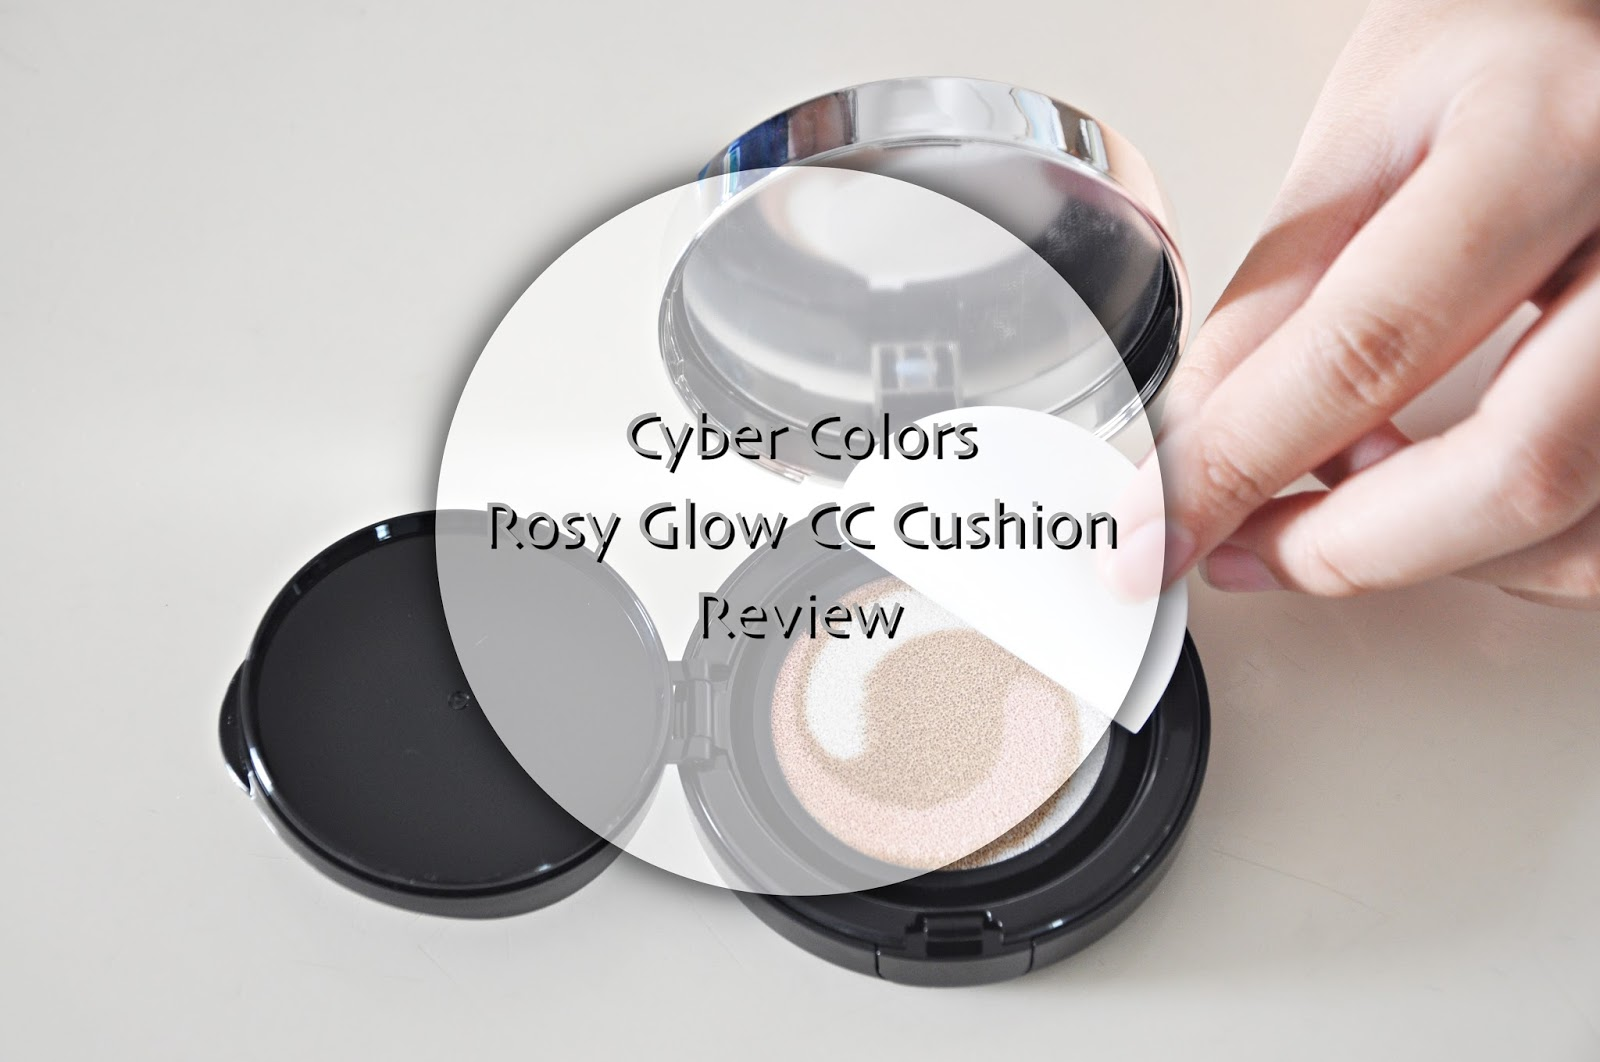 sara wanderlust review cyber colors rosy glow cc cushion